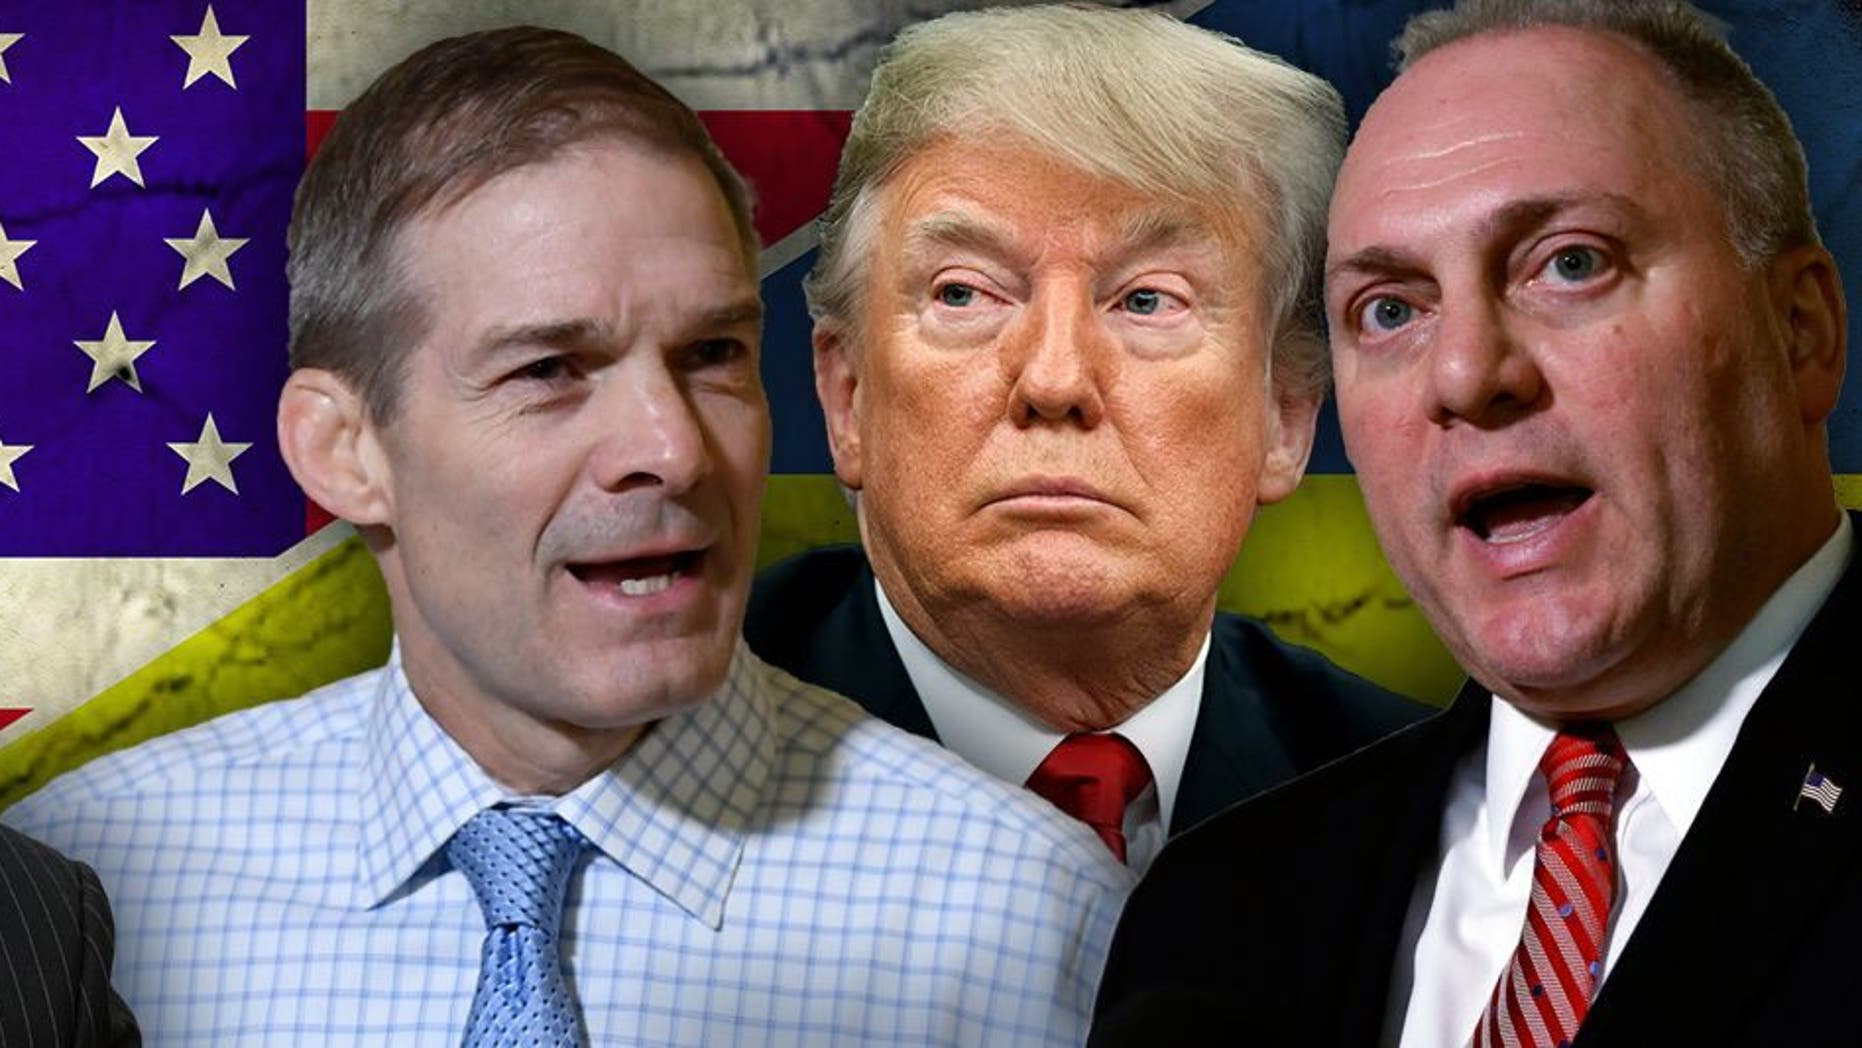 Westlake Legal Group Schiff103019 Republicans accuse Schiff of 'coaching' Trump impeachment witness; Democrat won't support impeachment fox-news/columns/fox-news-first fox news fnc/us fnc edbc5082-6b91-5f0a-8a16-e49dfdca9c09 article